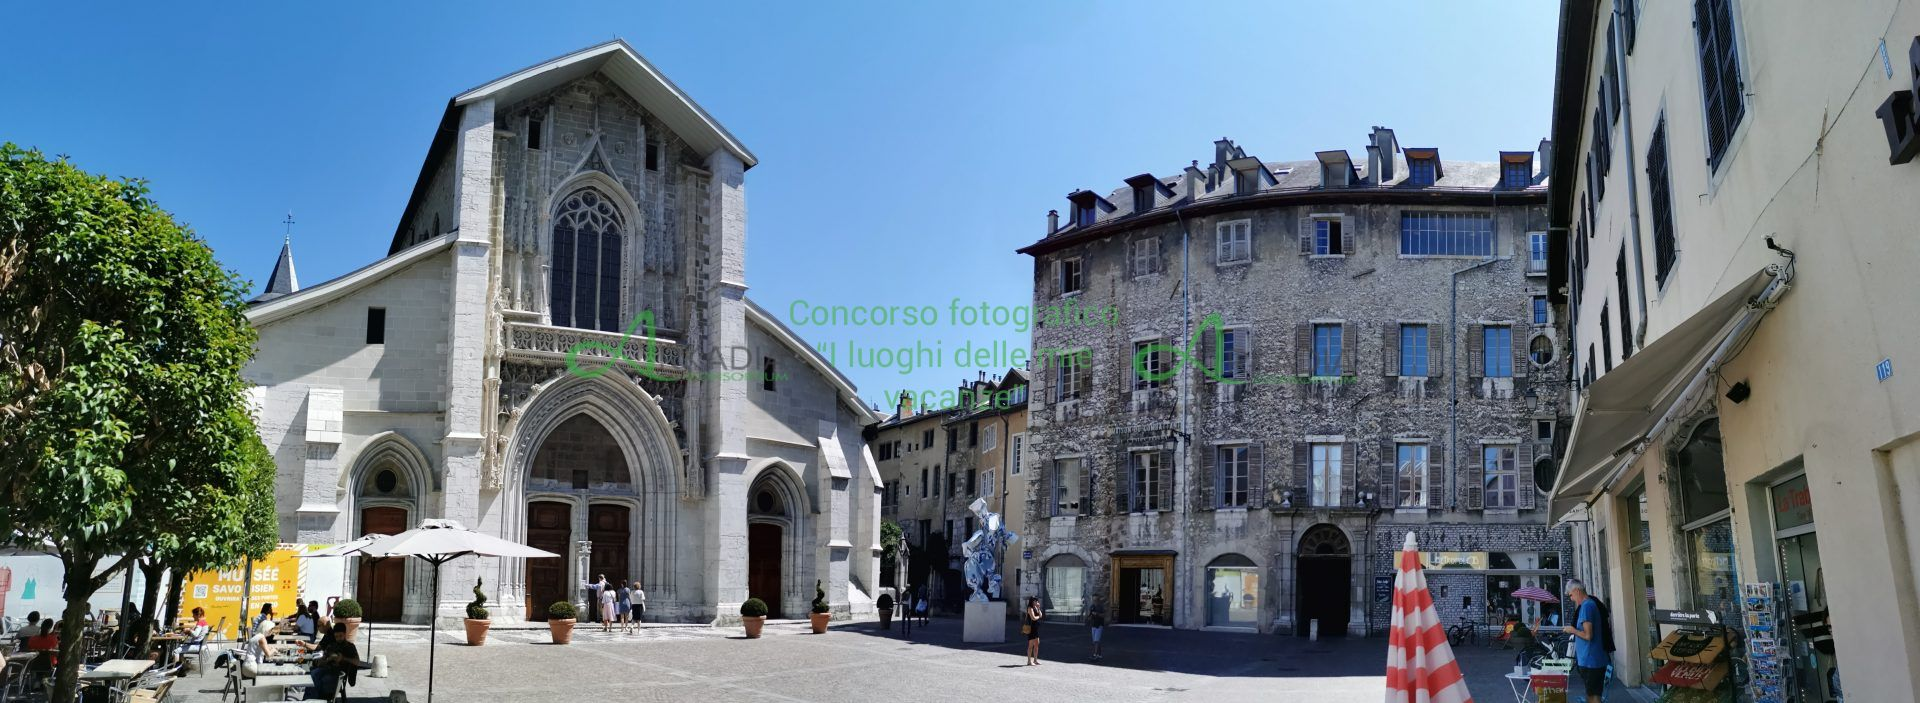 cattedrale di chambery (francia)